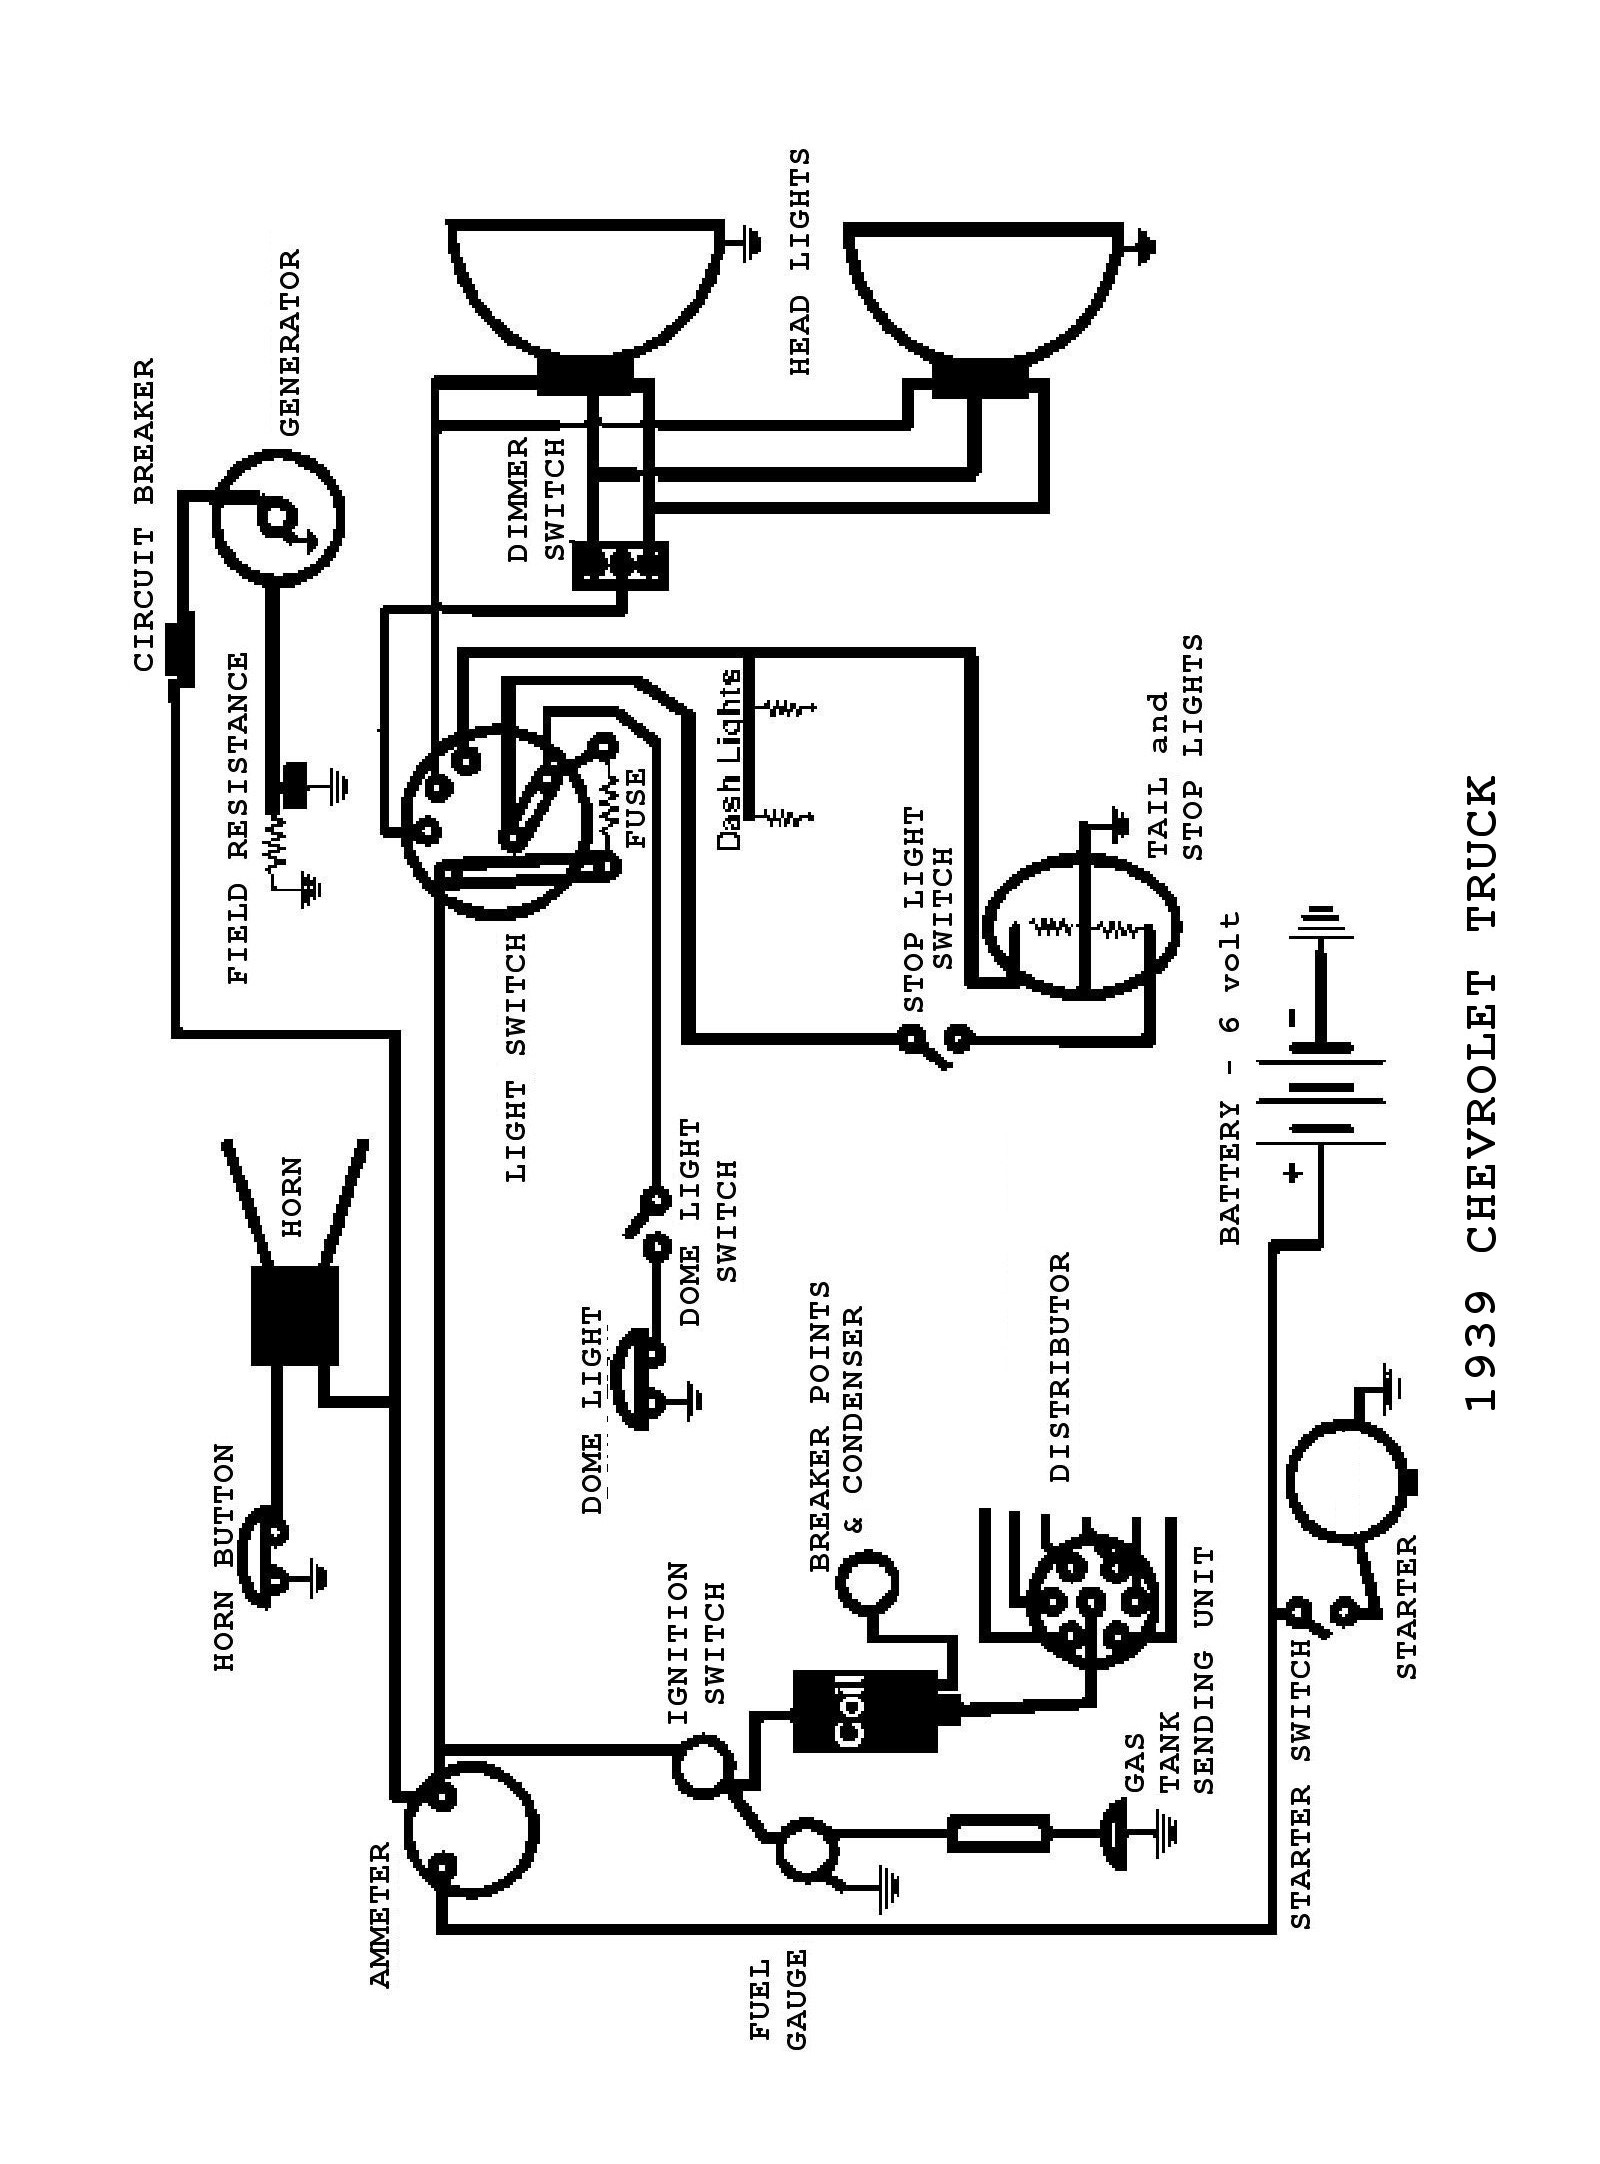 1949 1950 chevrolet wiring diagram wiring diagrams